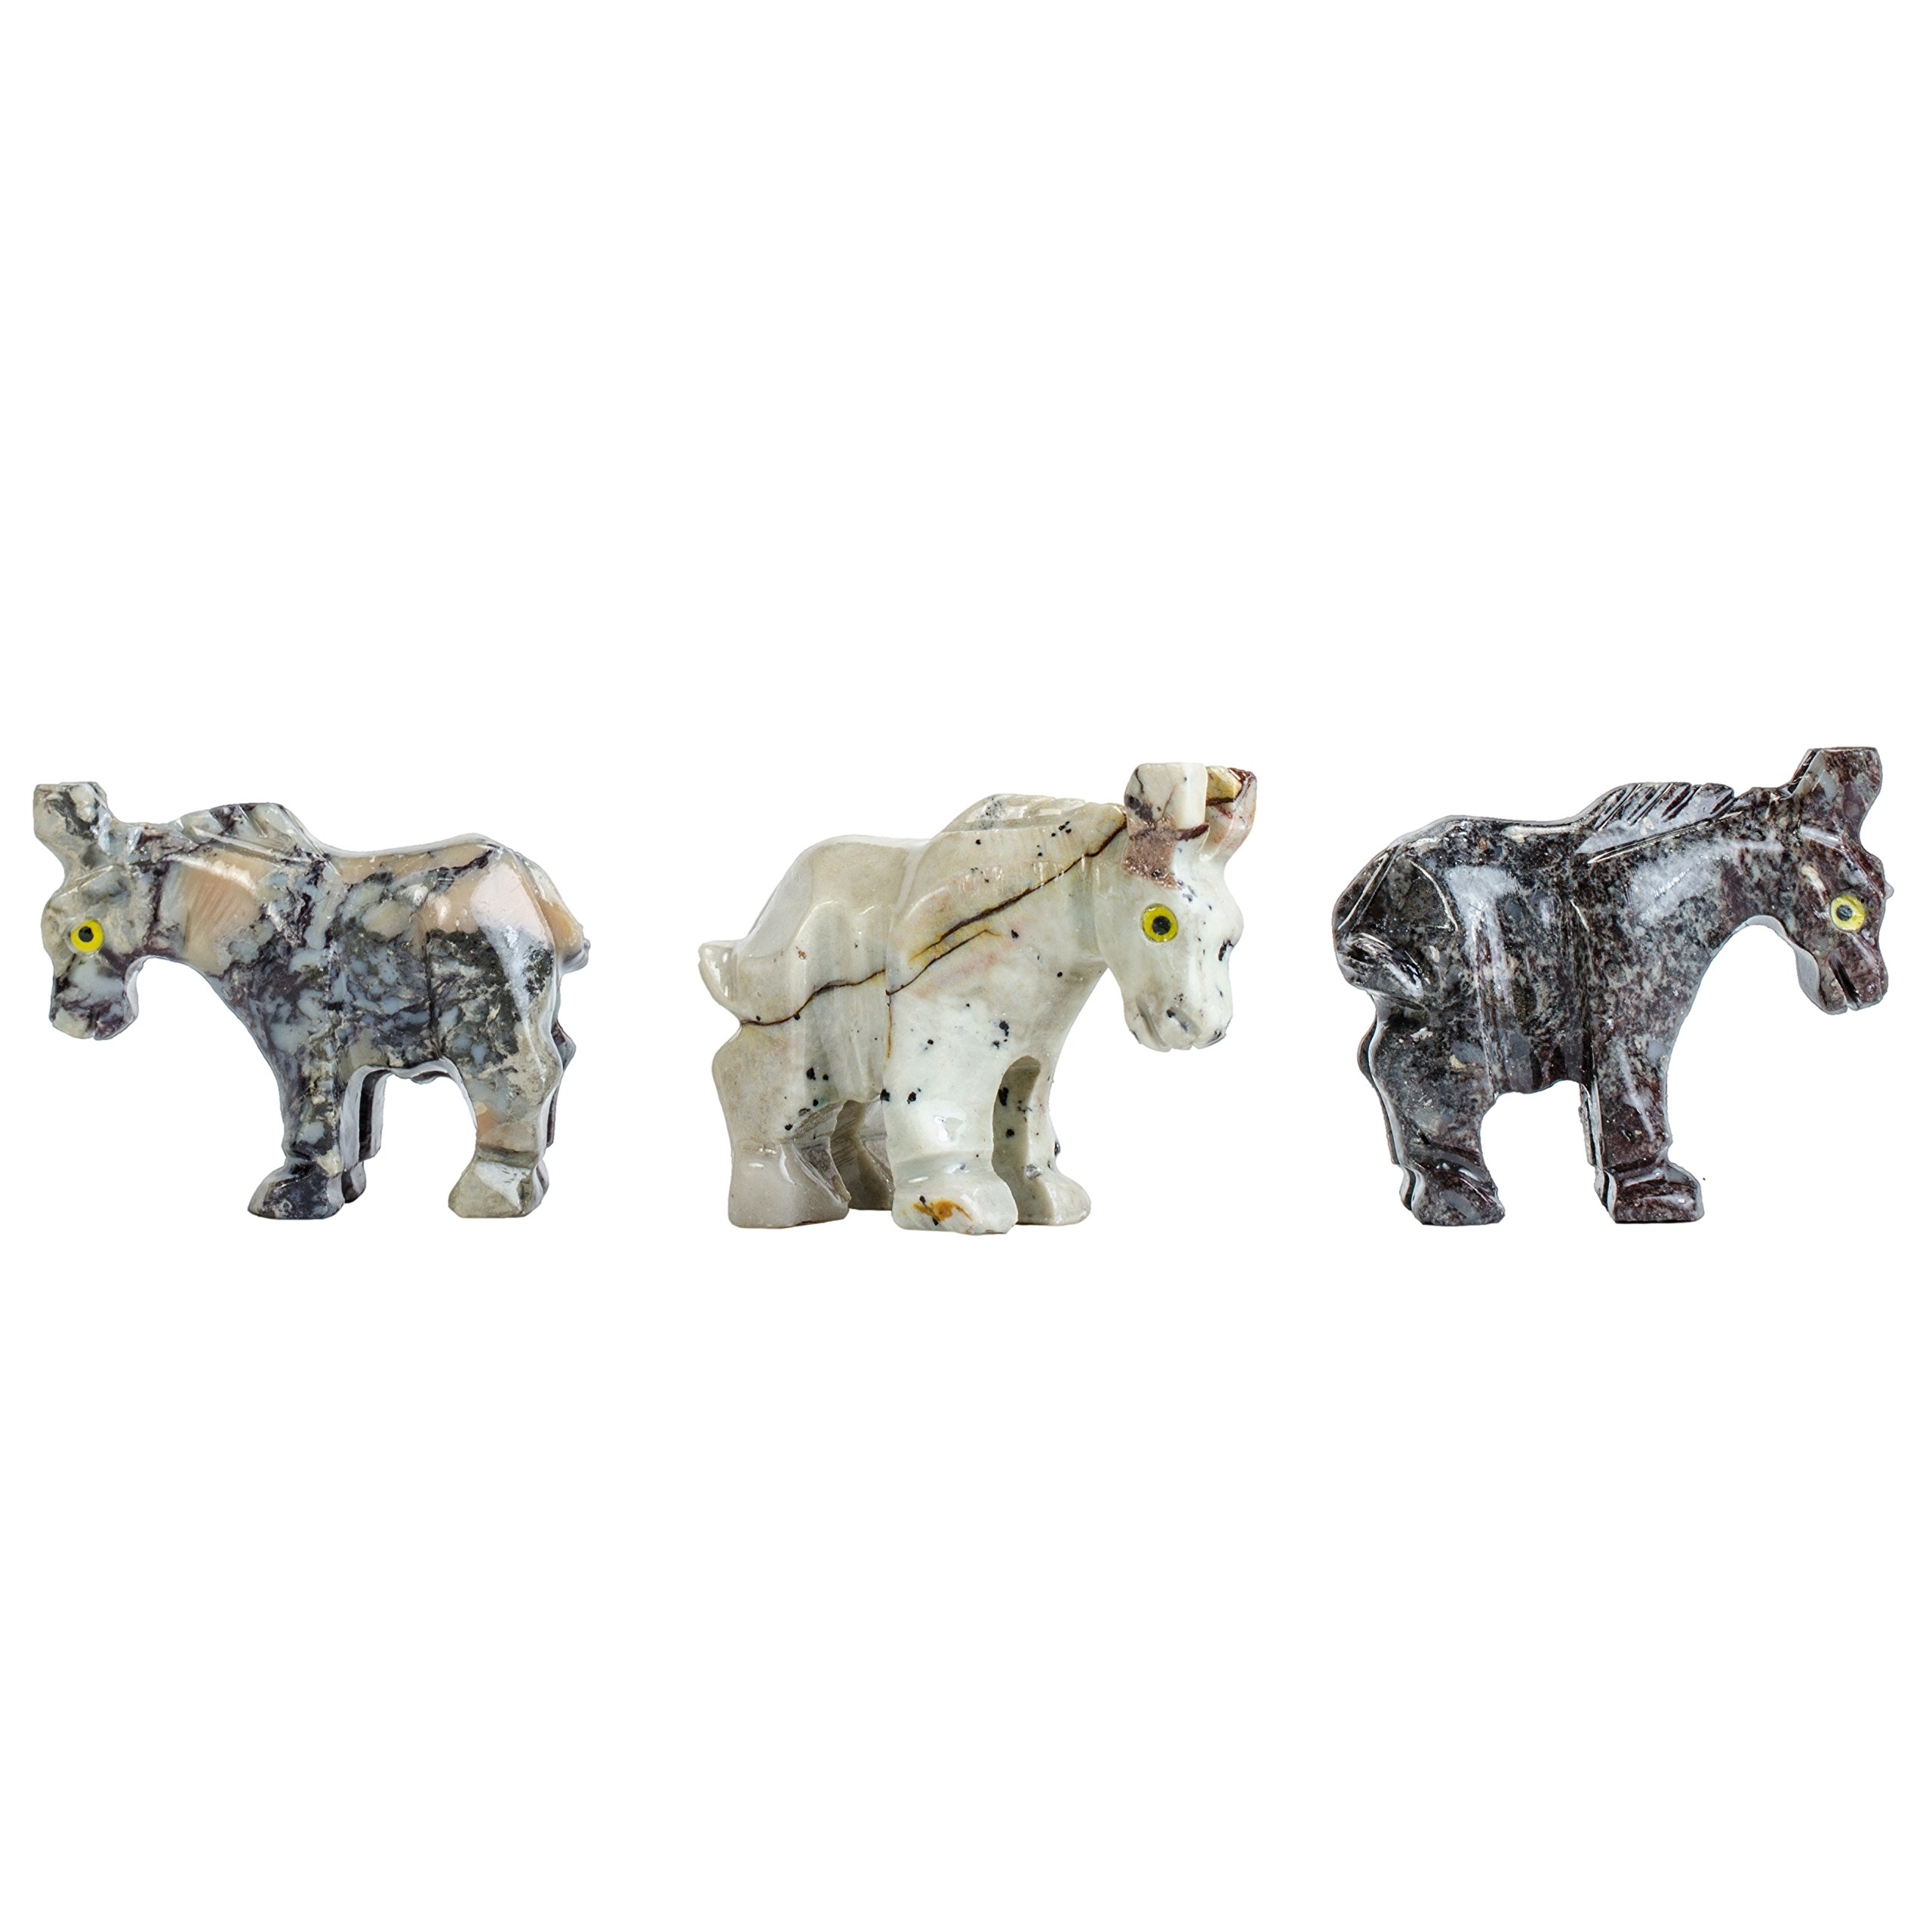 Fantasia Creations: 30 pcs Donkey Soapstone Animal Figurine - Hand Carved by Fantasia's Master Artisans for Party Favors, Collecting, Wire Wrapping, Gifts and More!